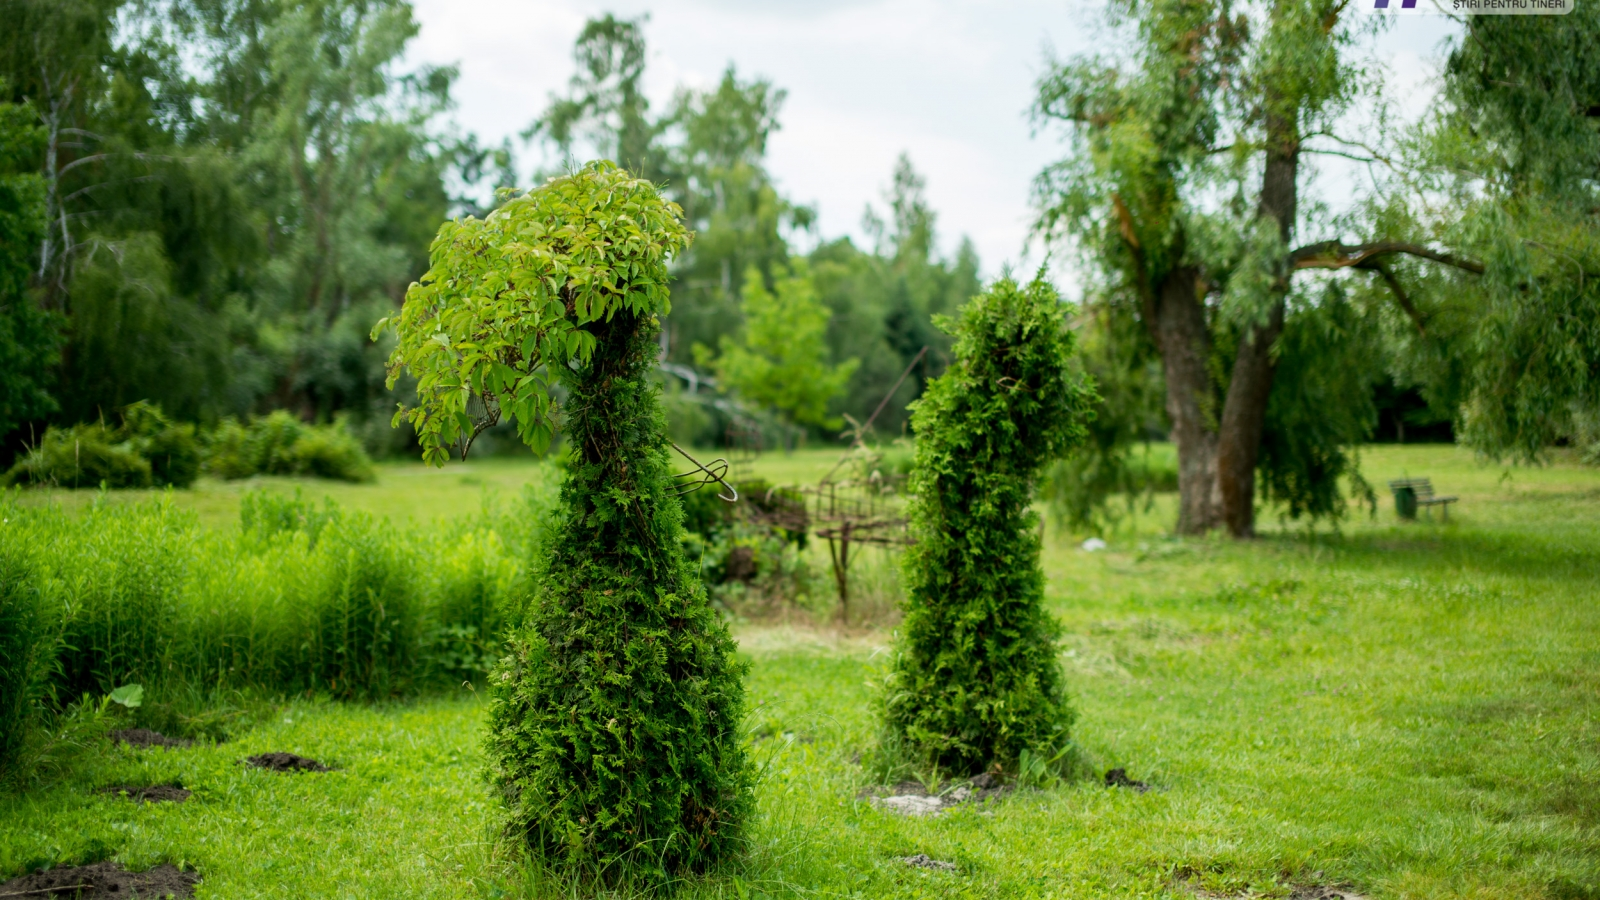 The ladies with umbrellas are to be restored this autumn, as well as the other topiary art objects (Botanical garden in Chișinău)